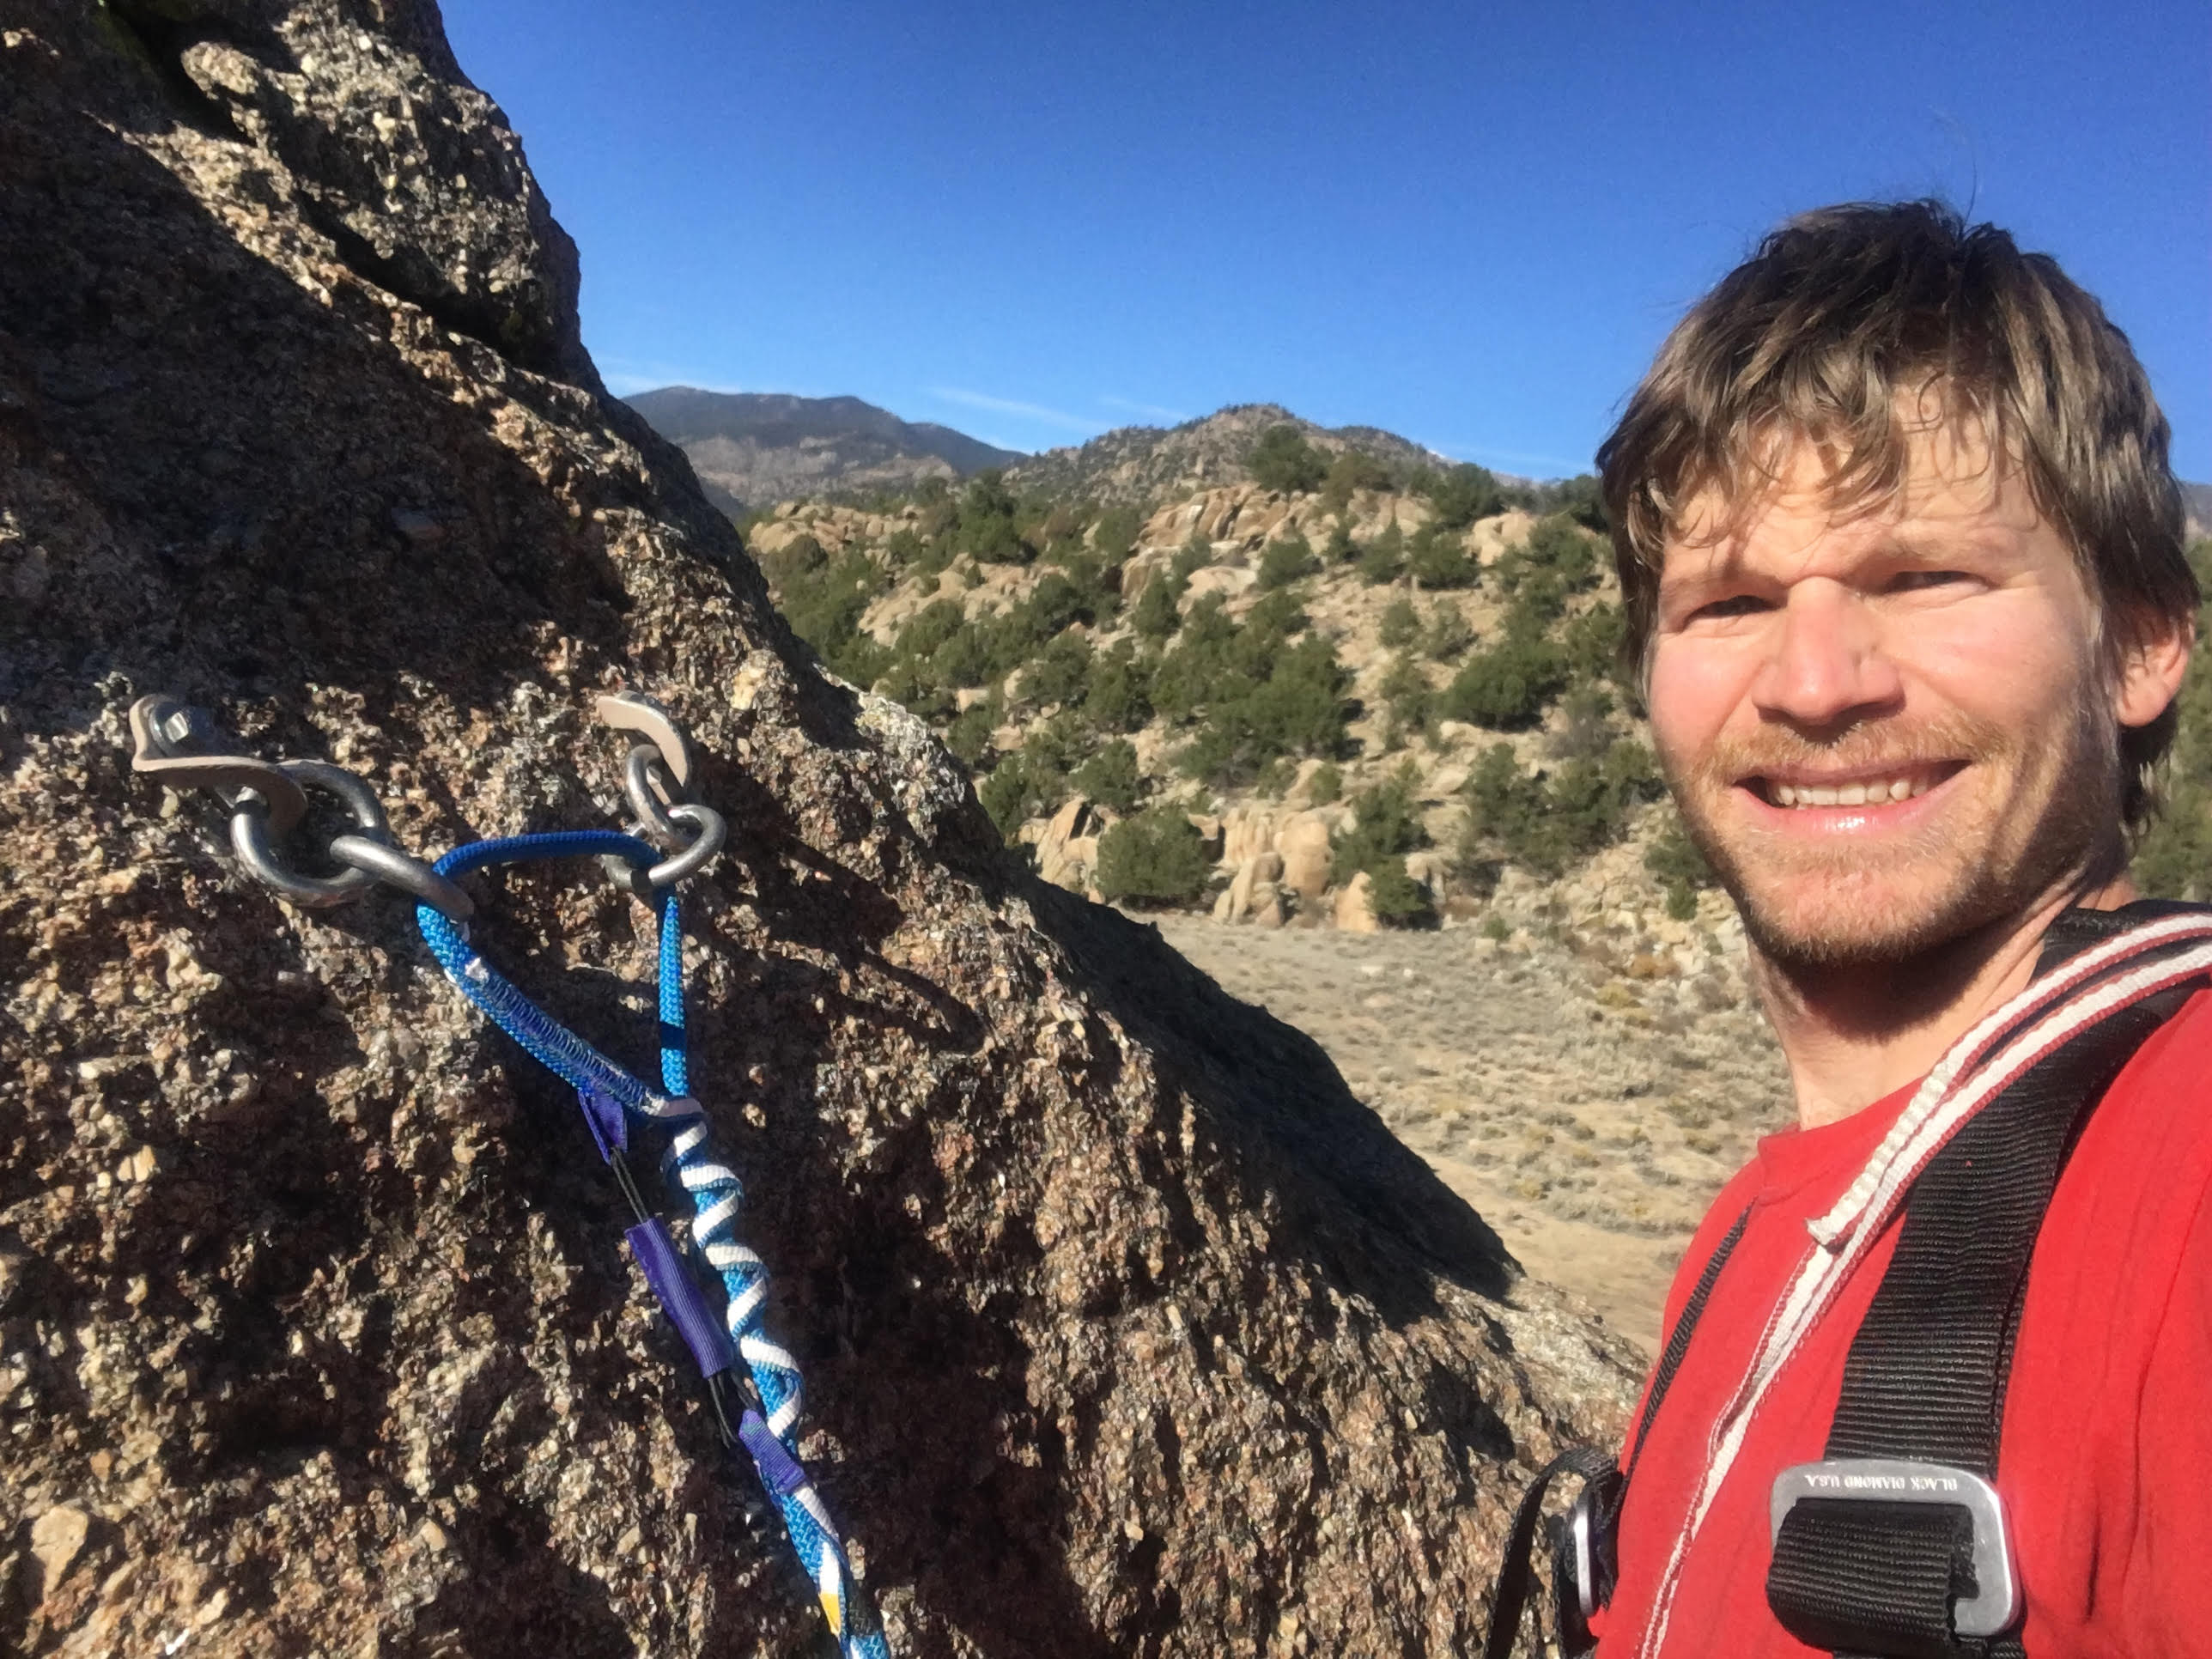 The author preparing to trust his life to the Beal Escaper for the first time on top of Elephant Rock in Buena Vista. [Photo] Derek Franz